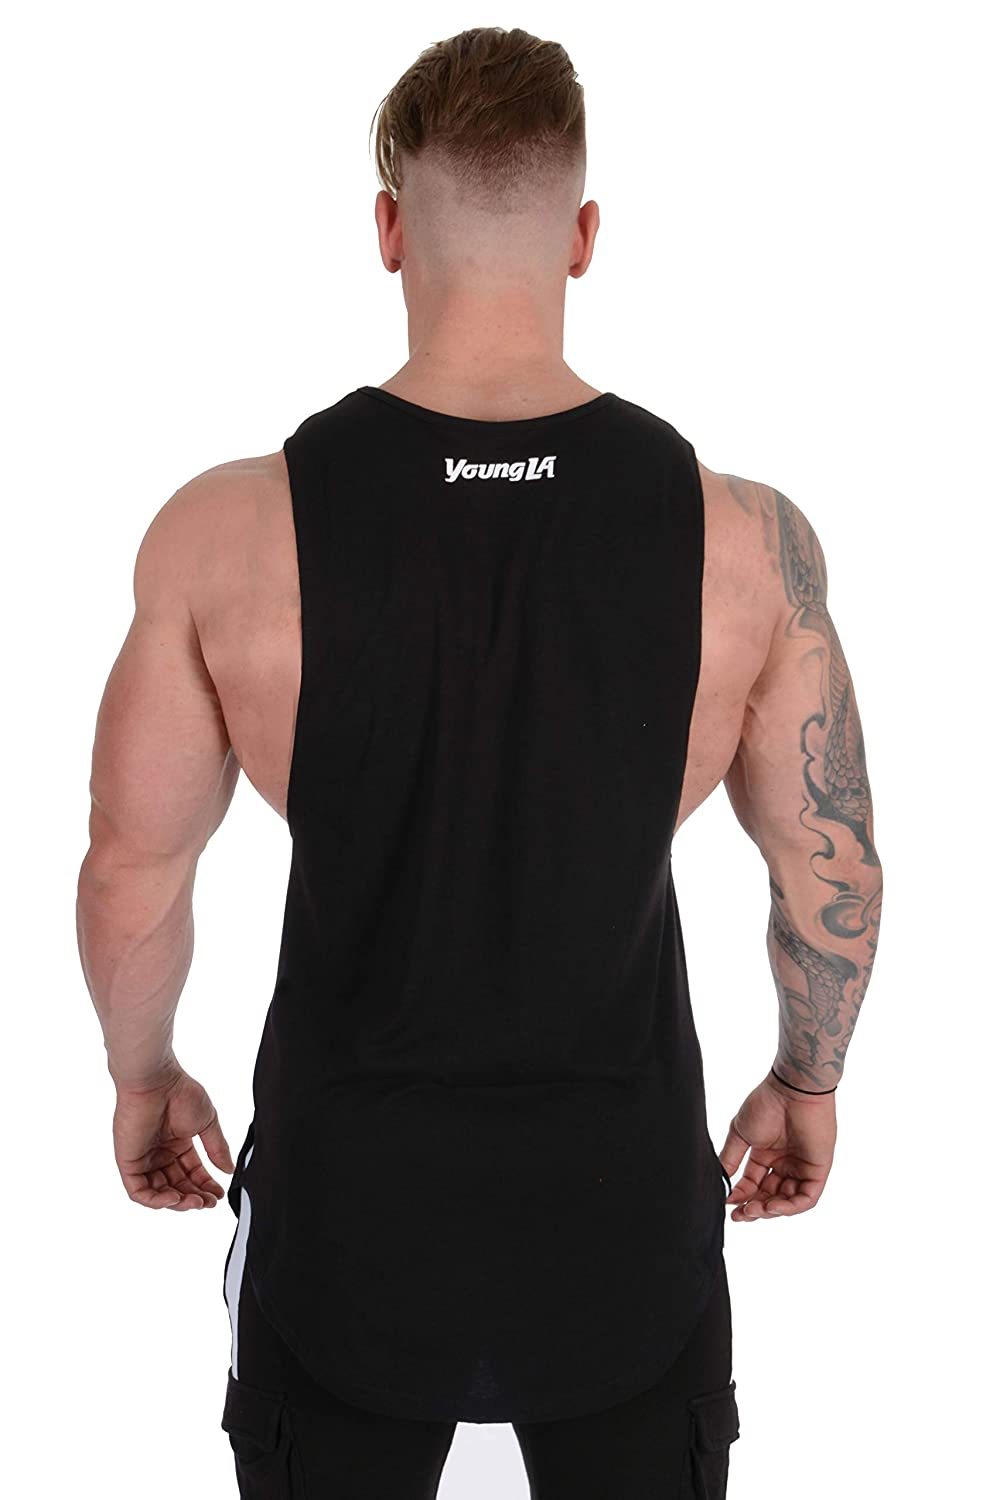 YoungLA Y-Back Racerback Muscle Bodybuilding Stringer Tank Top Acid Washed w//Trendy Raw Edges